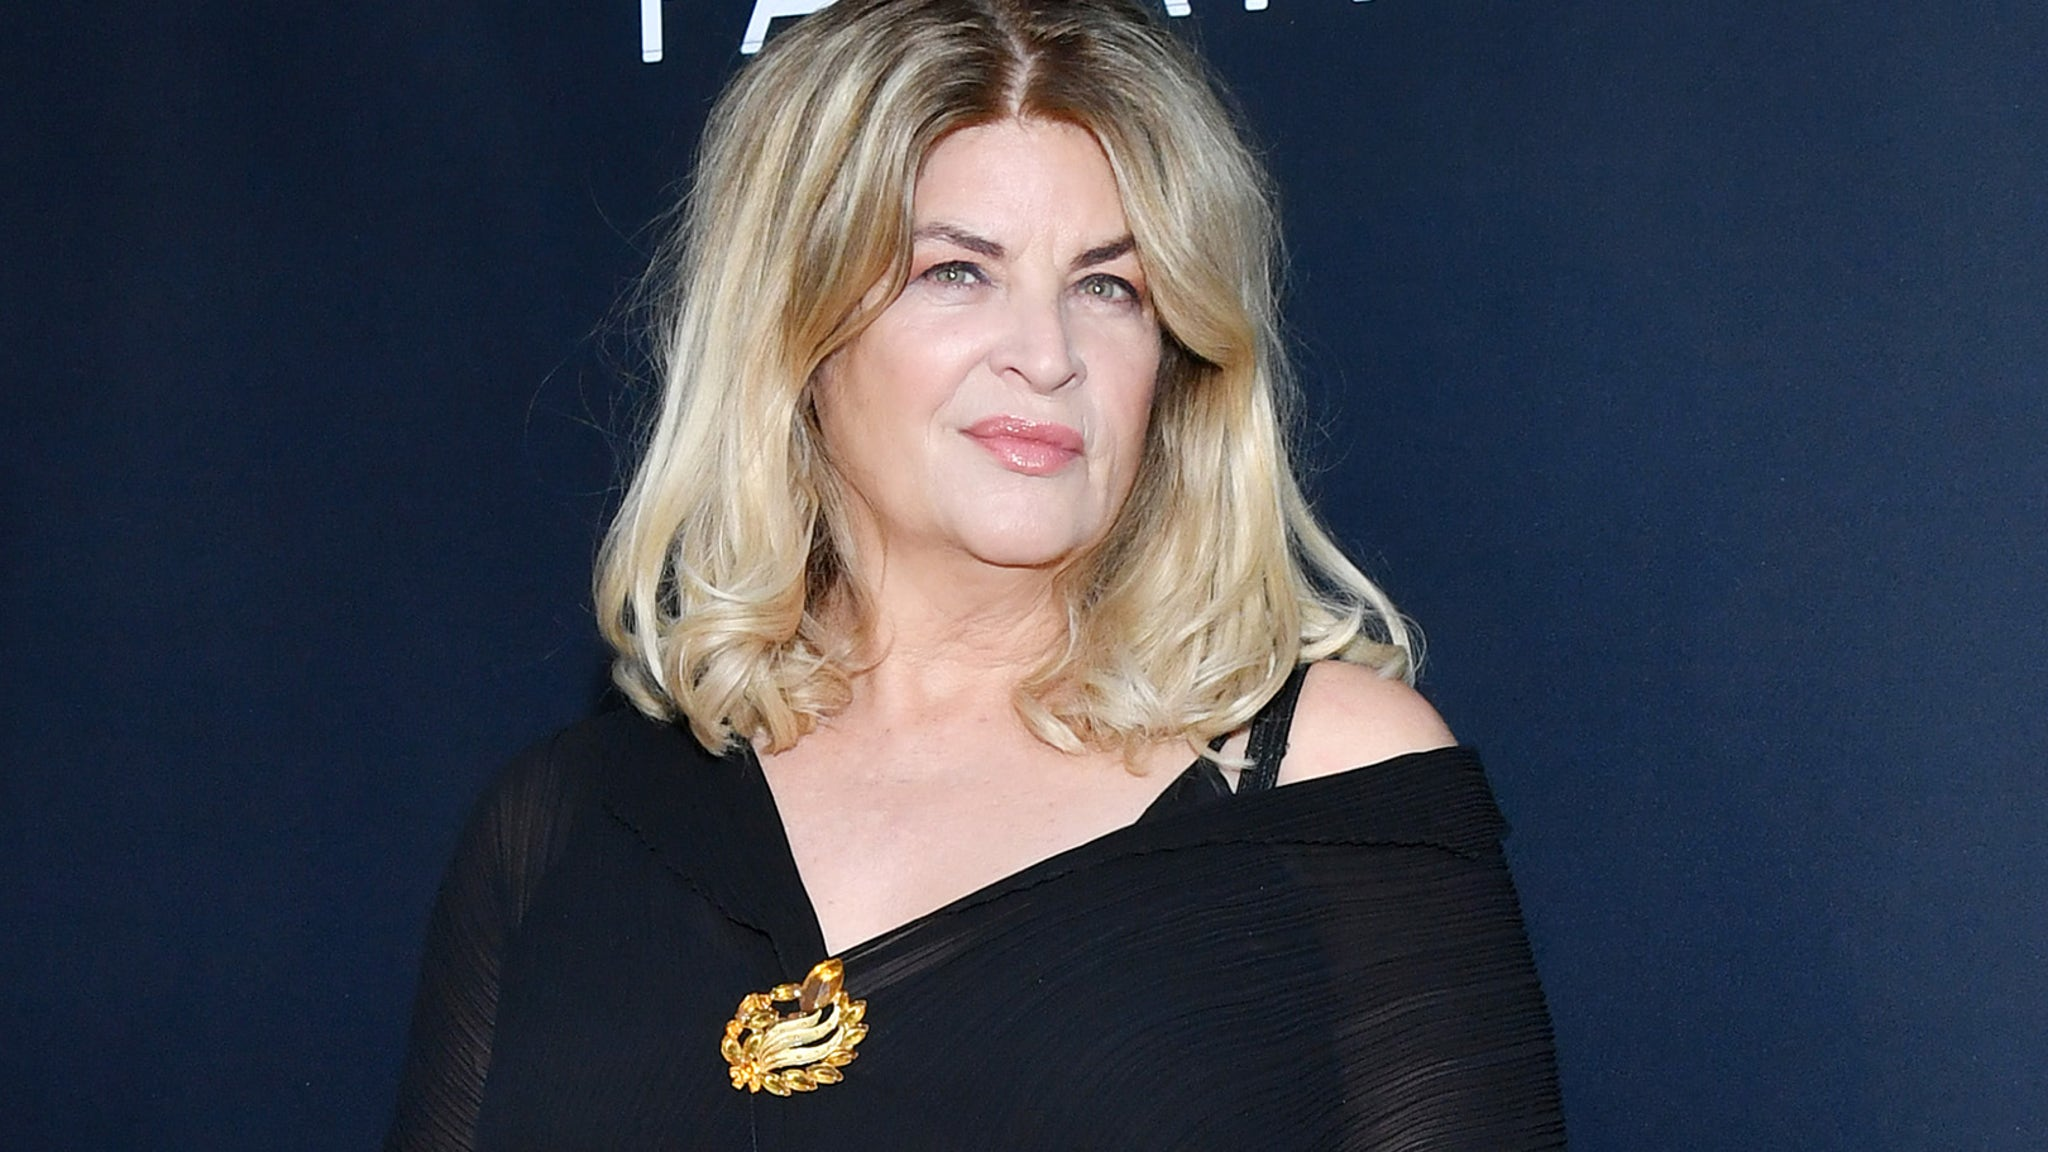 Kirstie Alley to be fat on TV | The Blemish